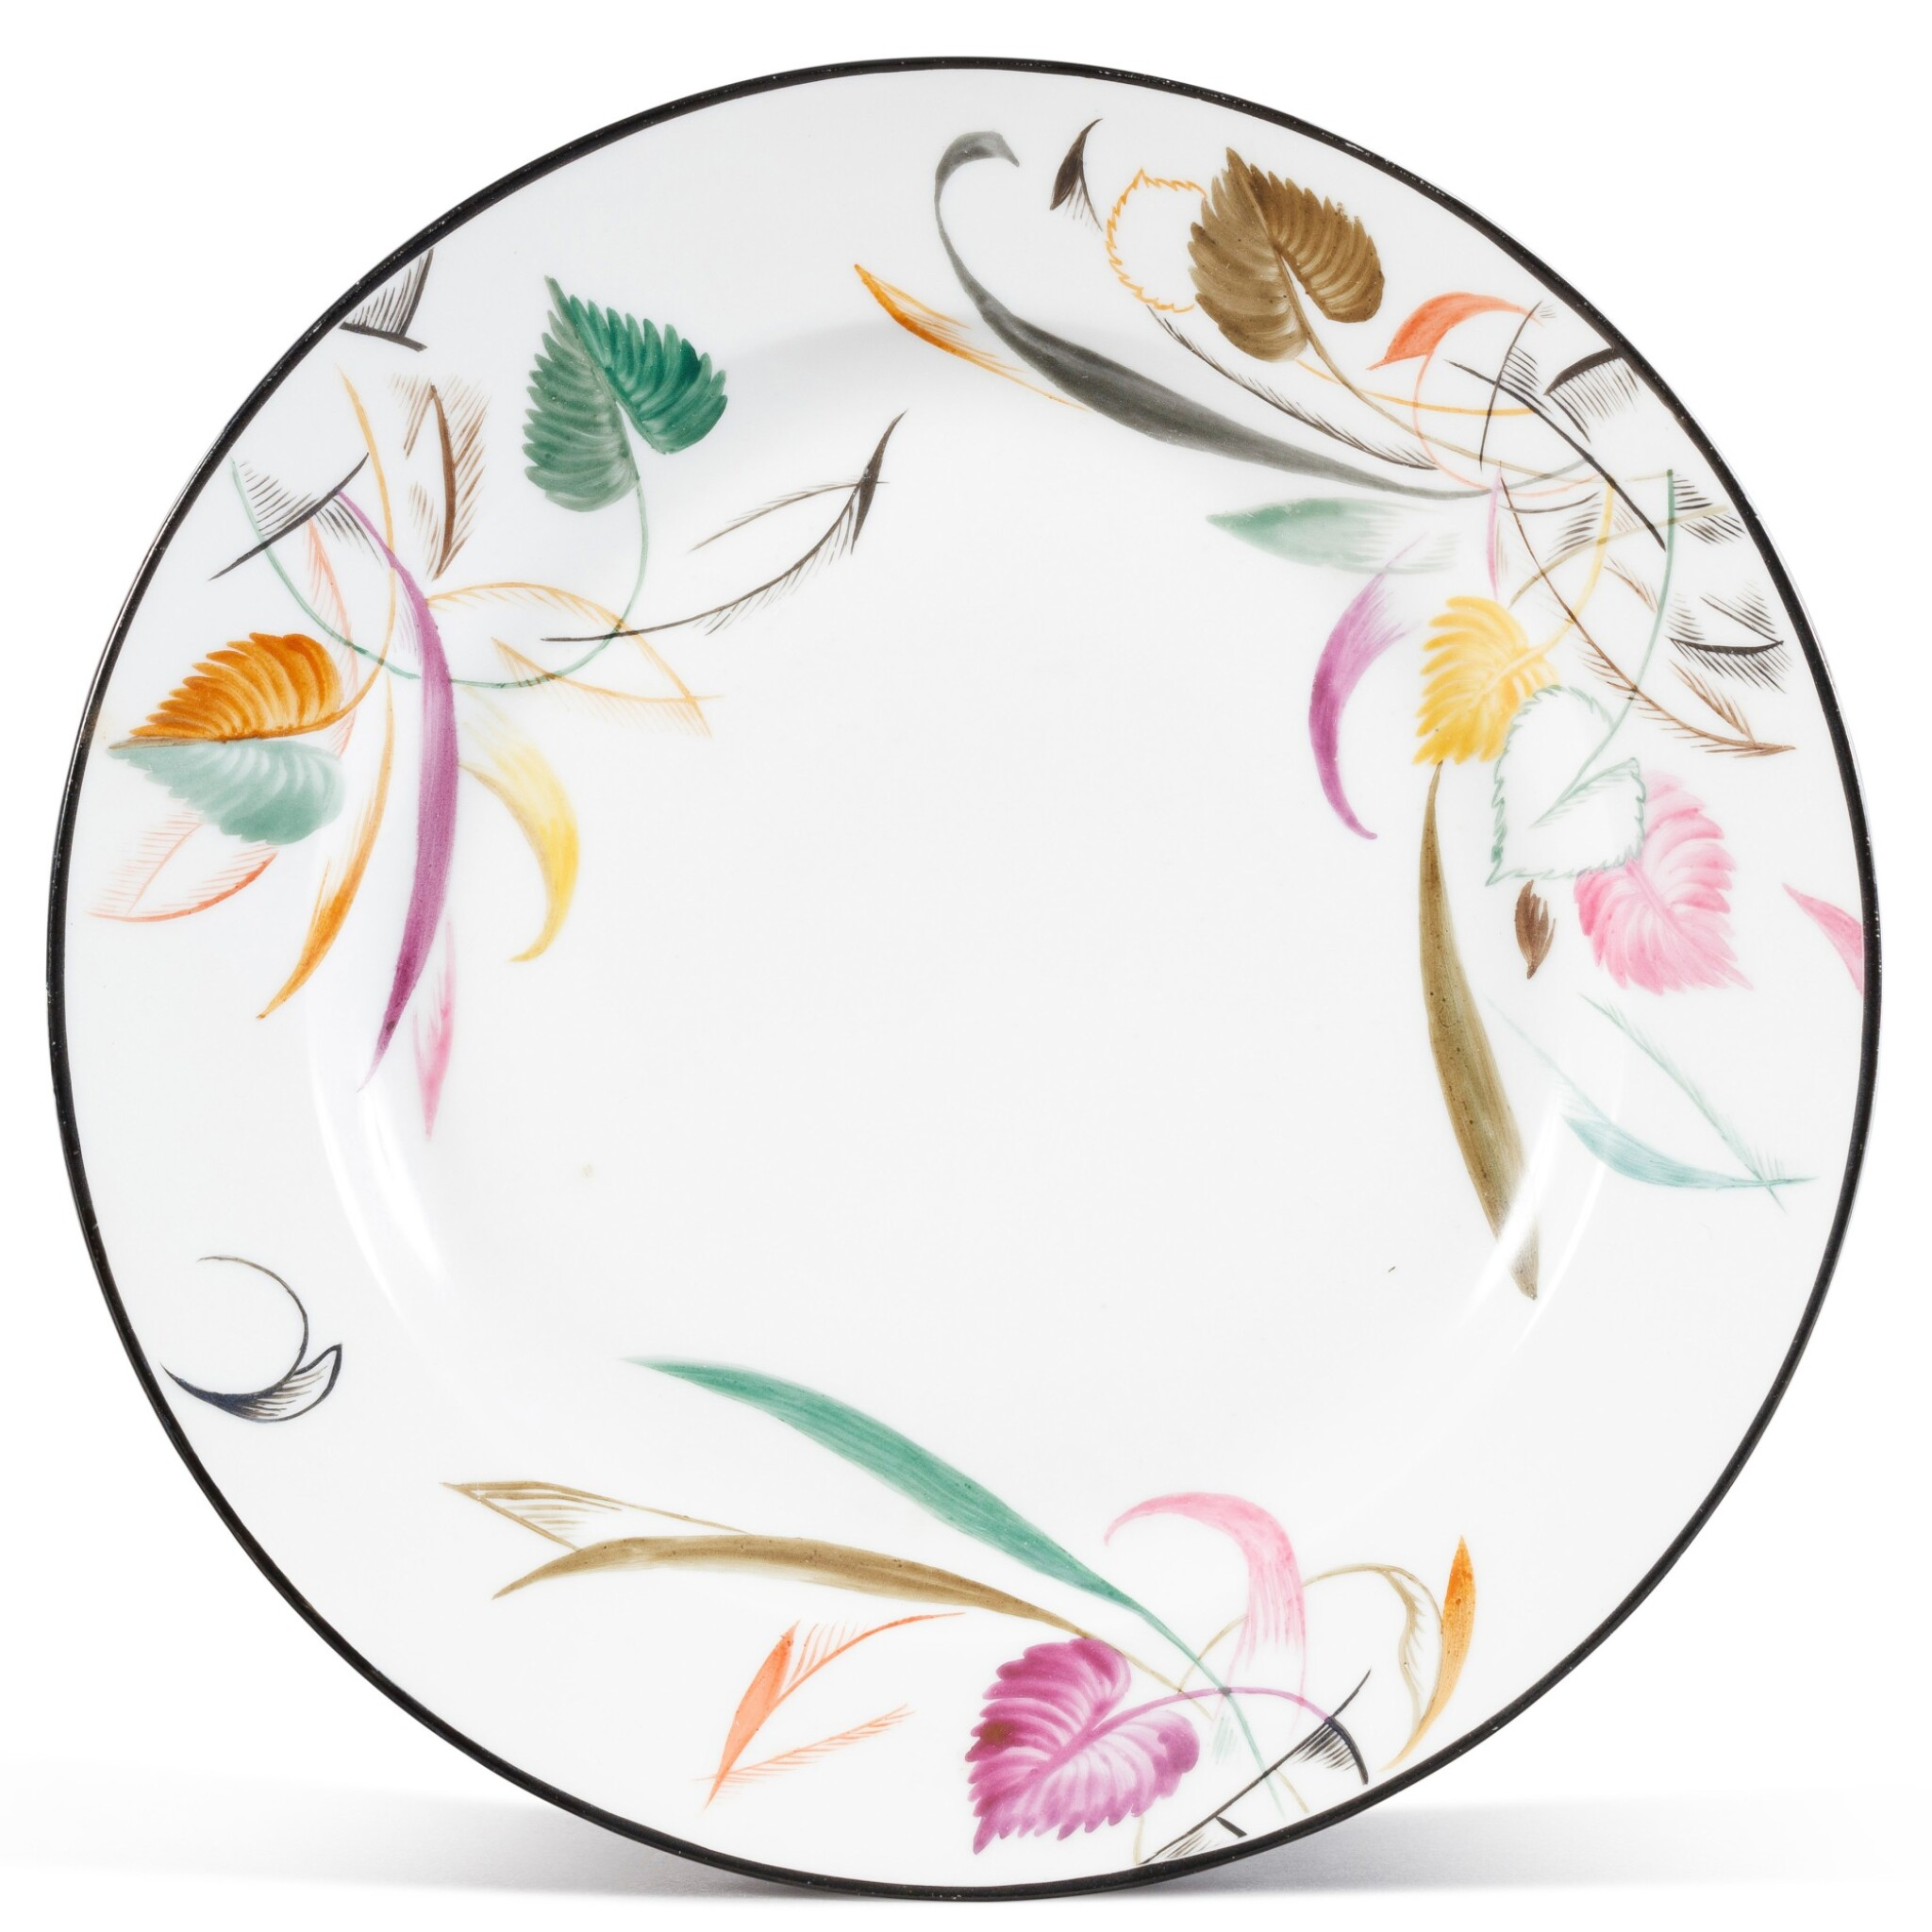 View full screen - View 1 of Lot 152. A Soviet porcelain plate, State Porcelain Factory, Petrograd, 1920.